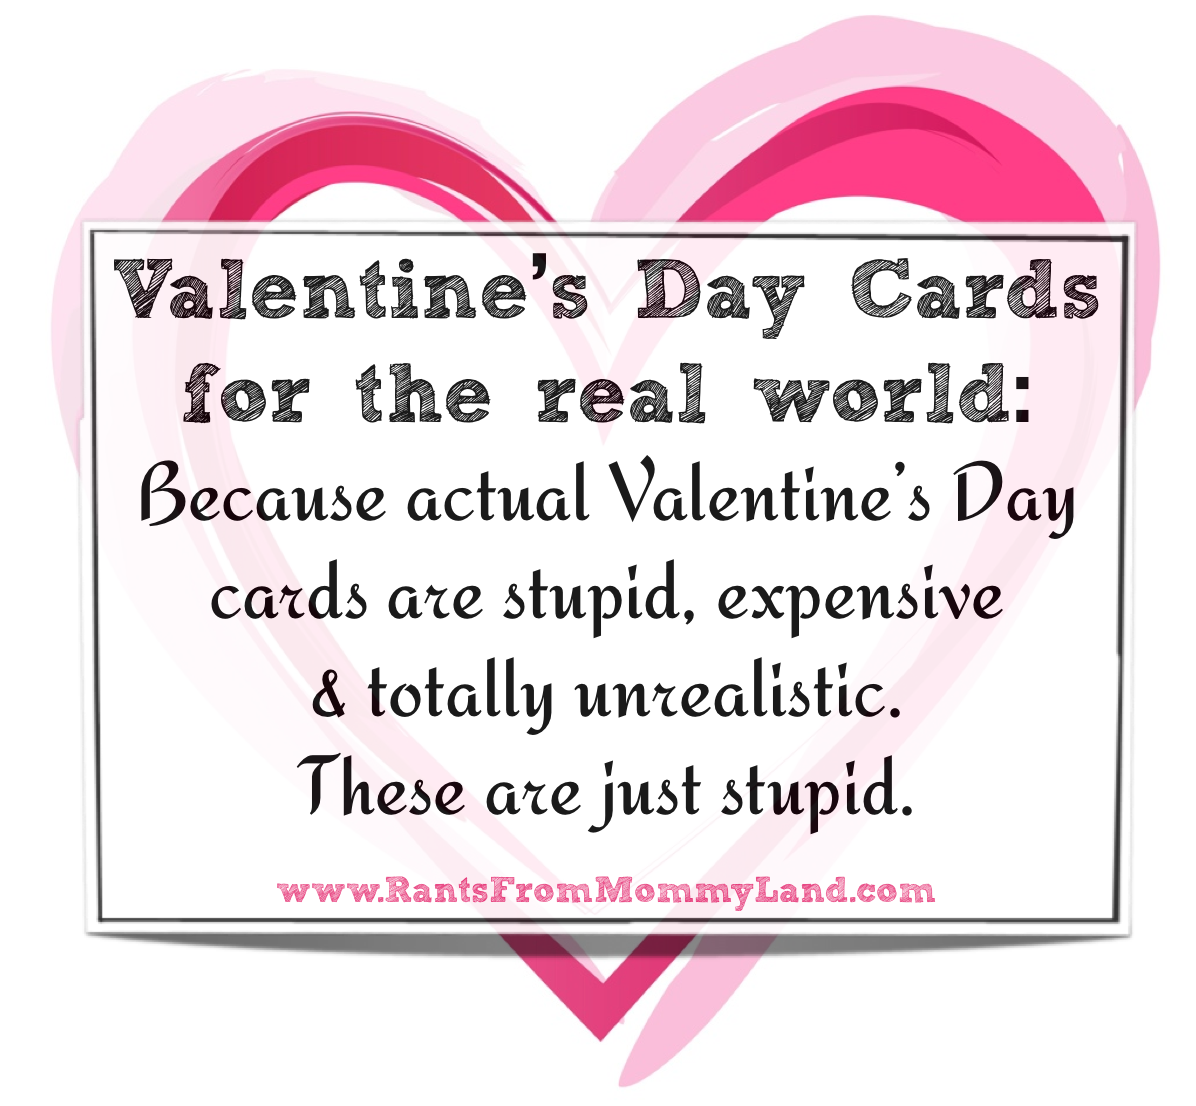 RANTS FROM MOMMYLAND Valentines for the Real World